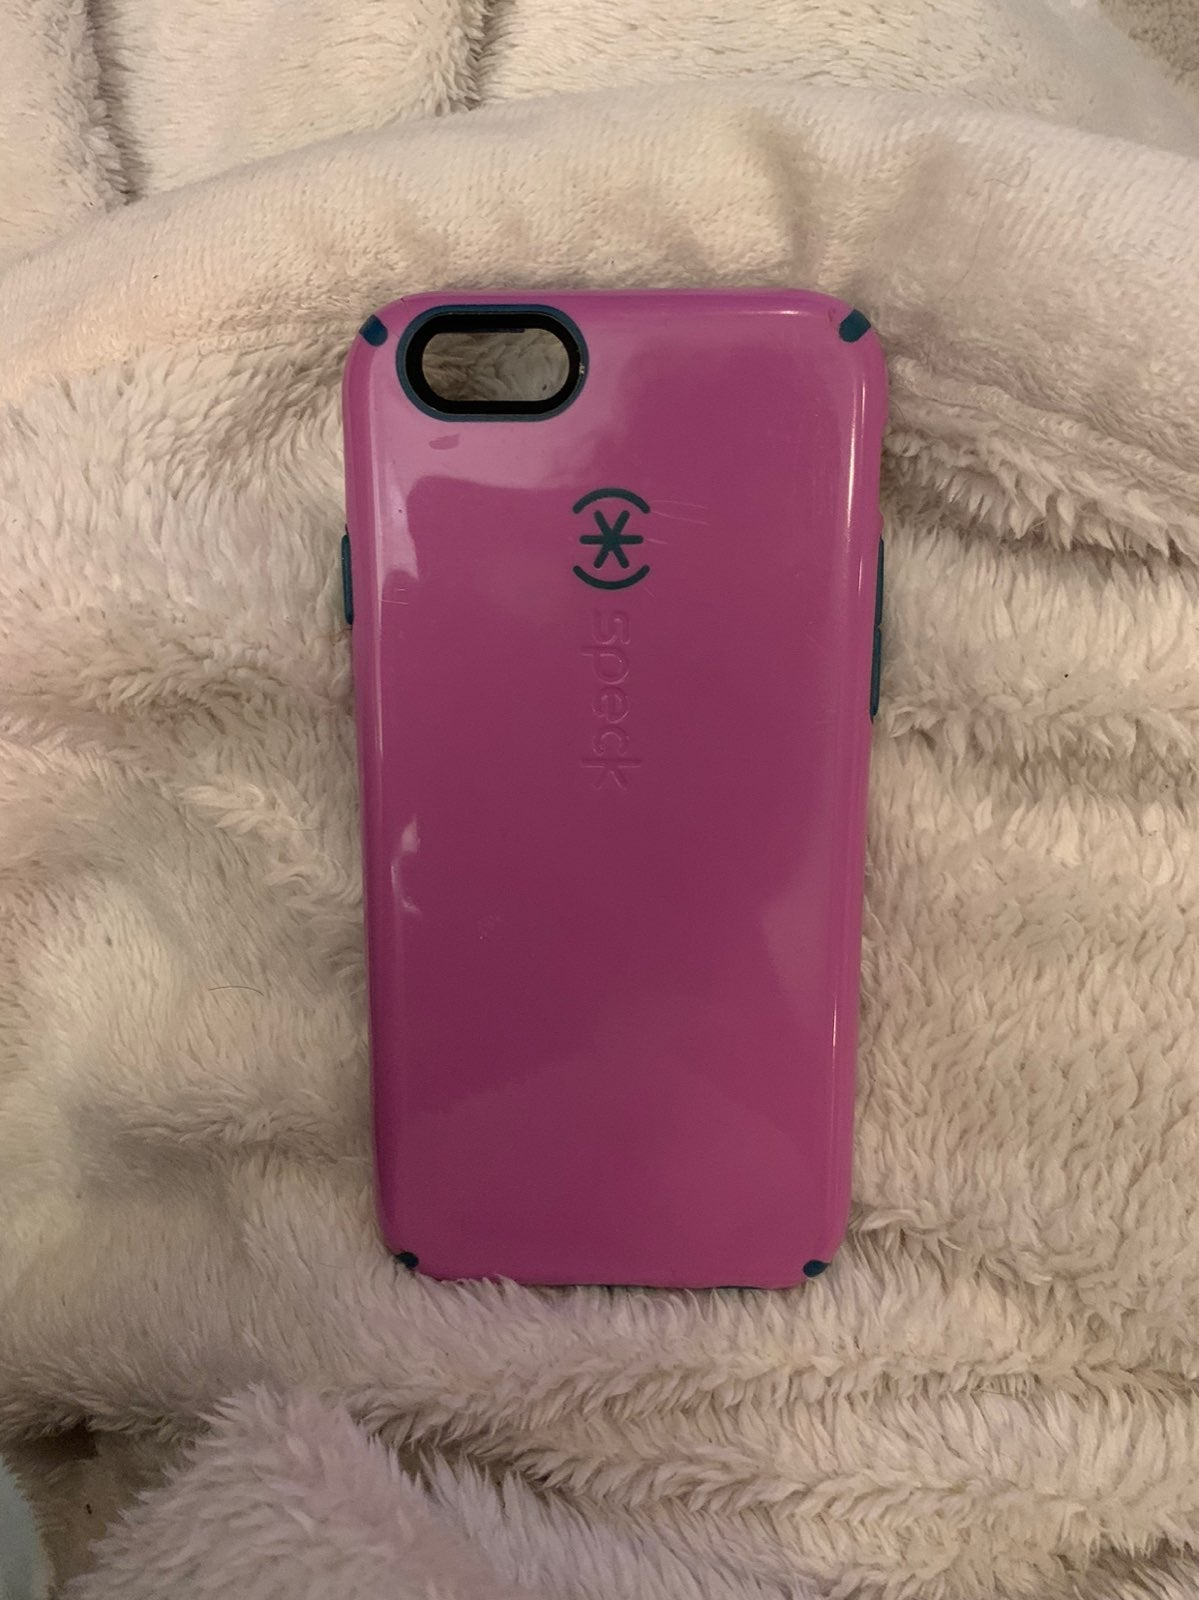 iphone 6s speck case